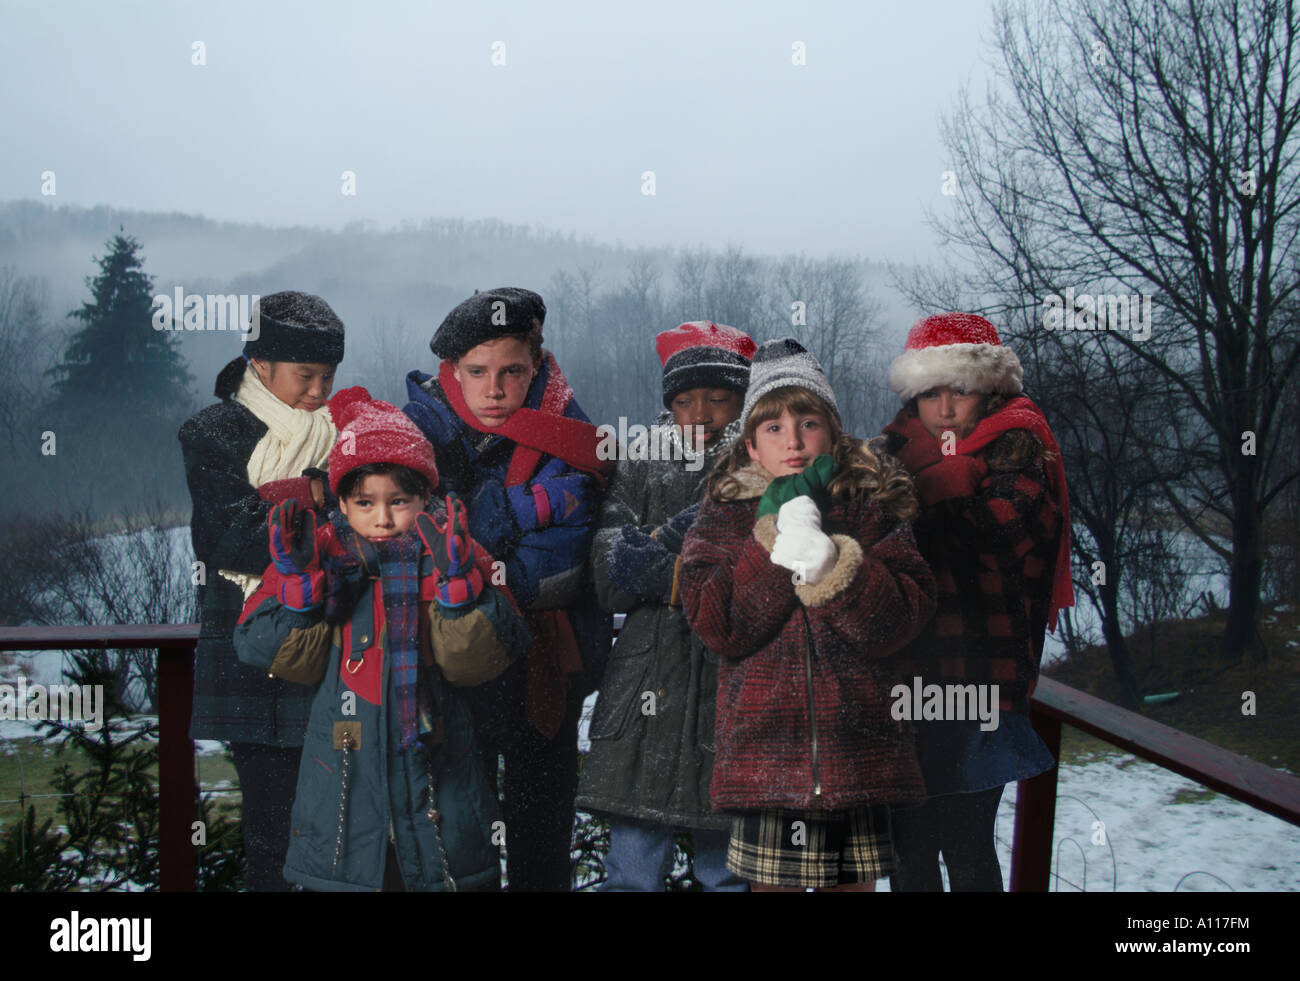 children huddled in extremely cold weather - Stock Image